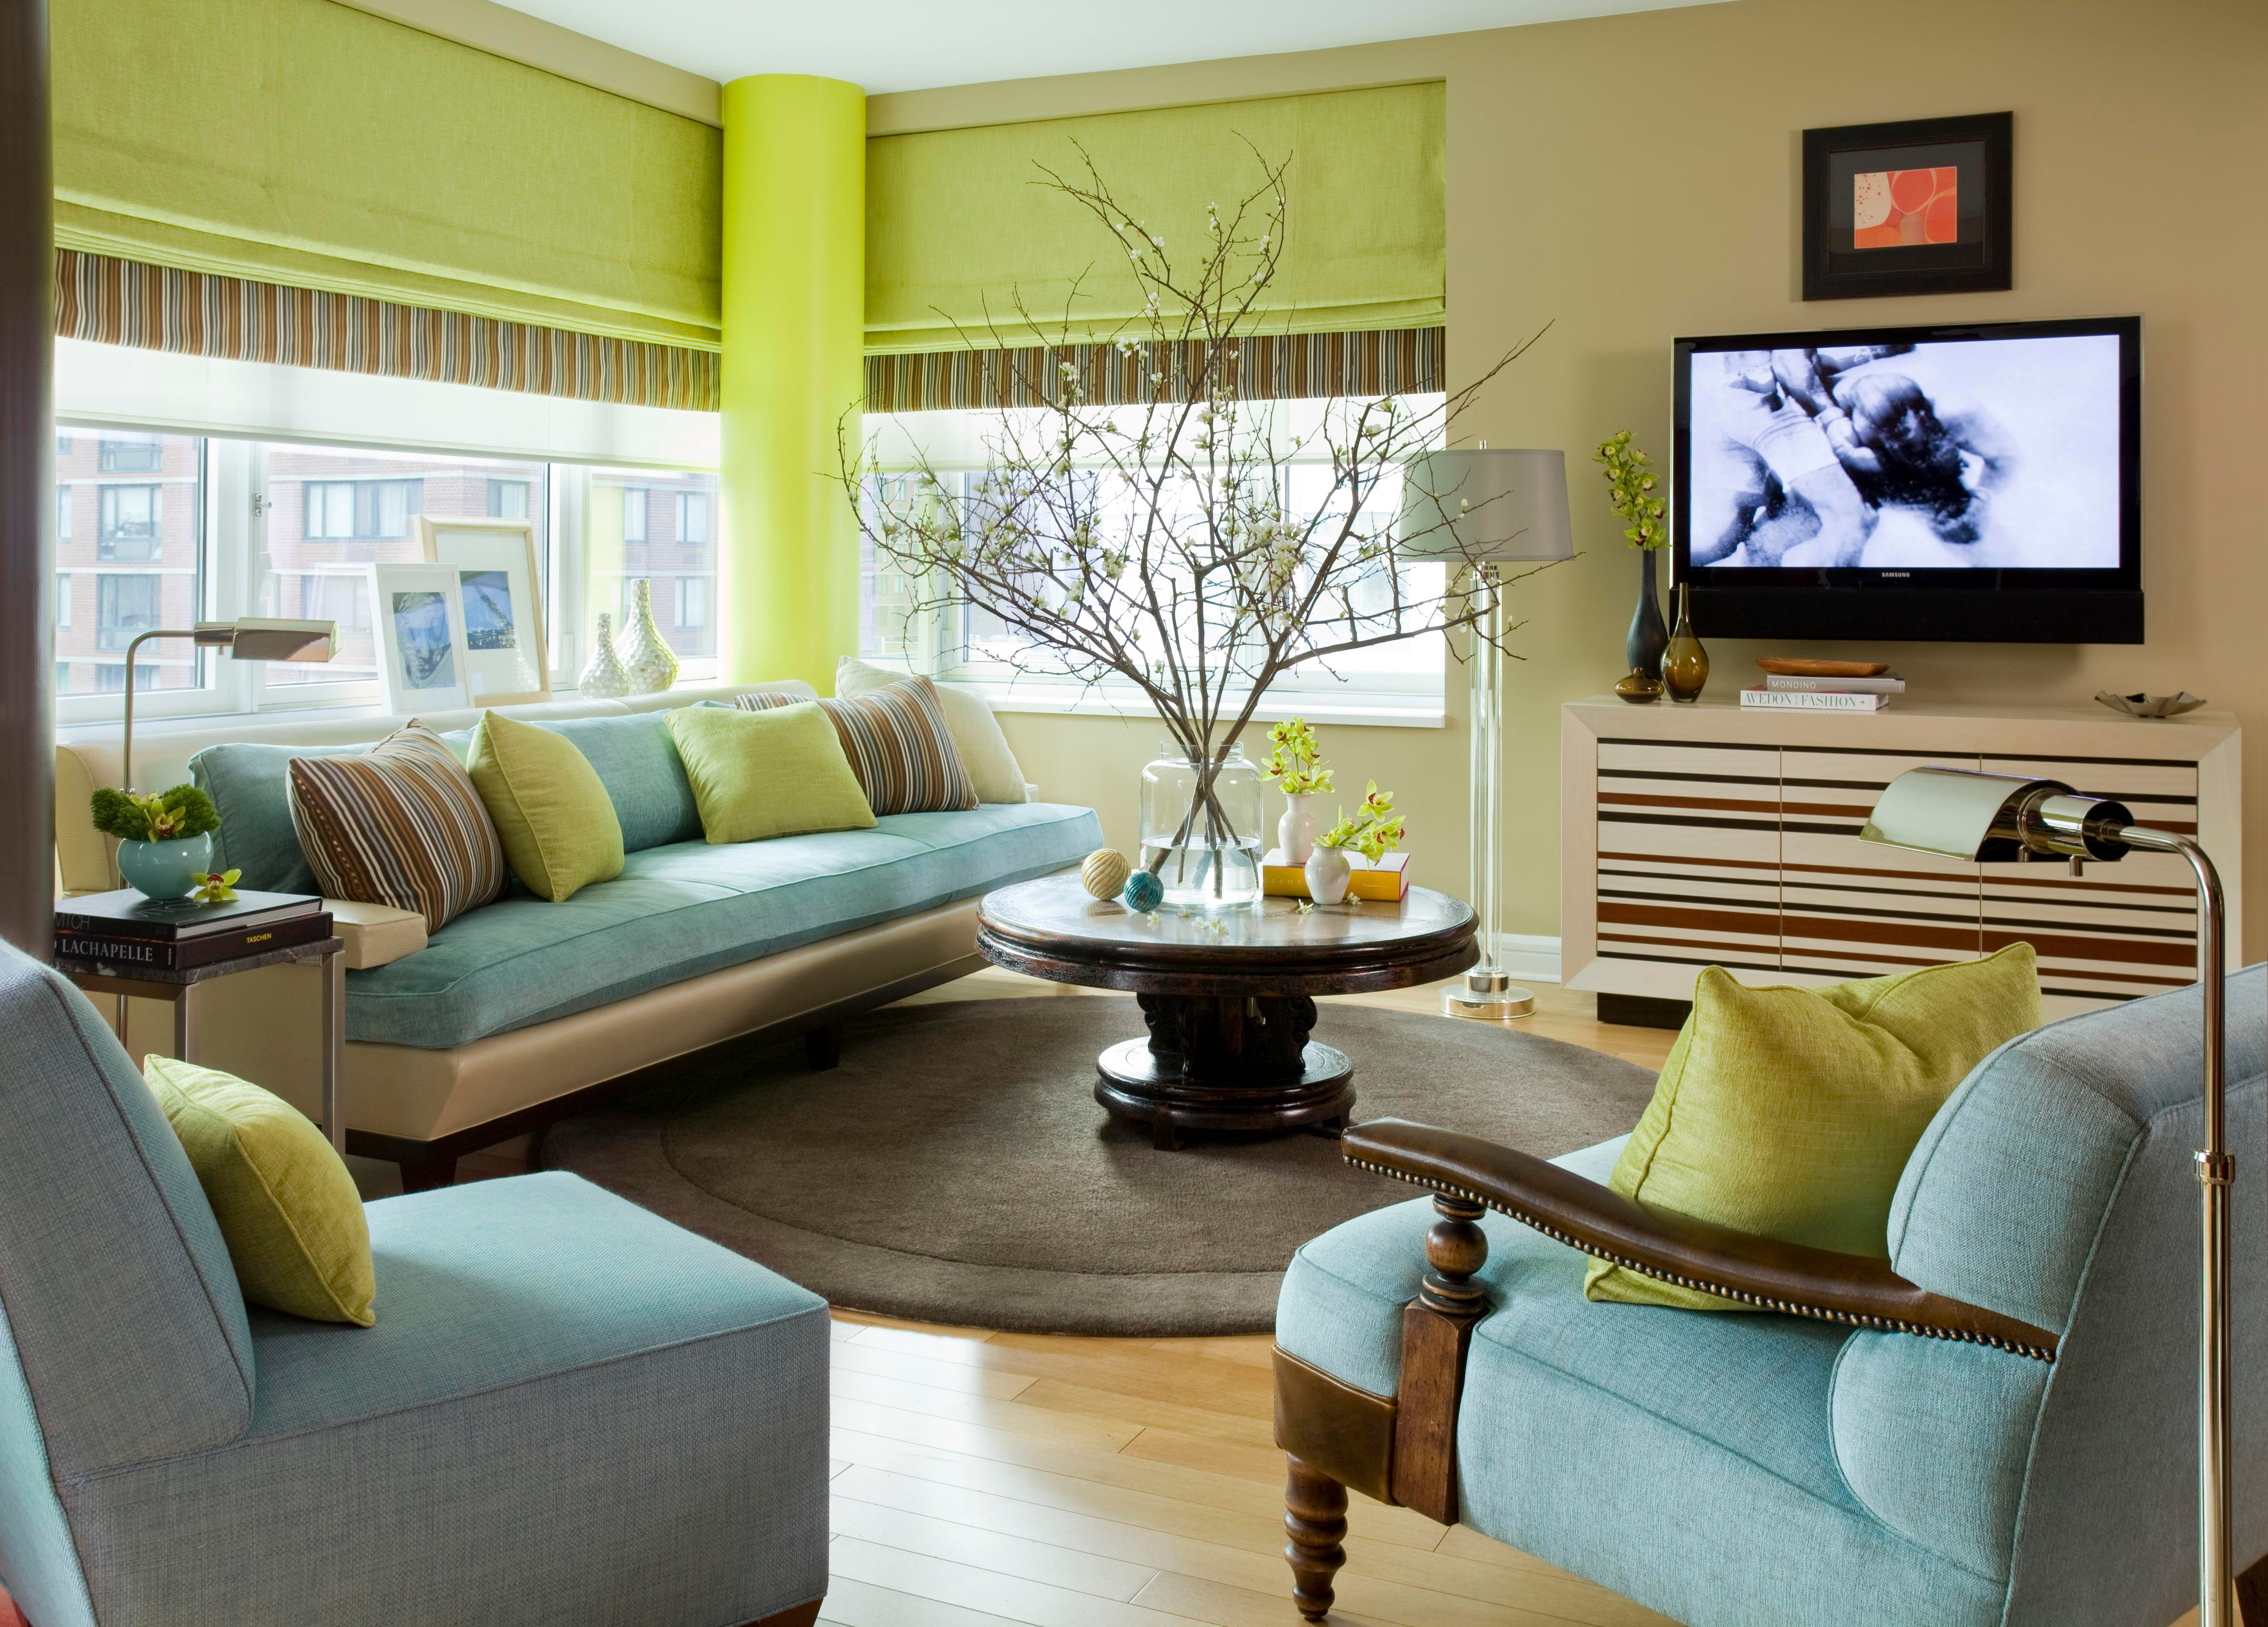 With 45 Dering Inspiration Colorful Seating Living Rooms u3lJcKTF1